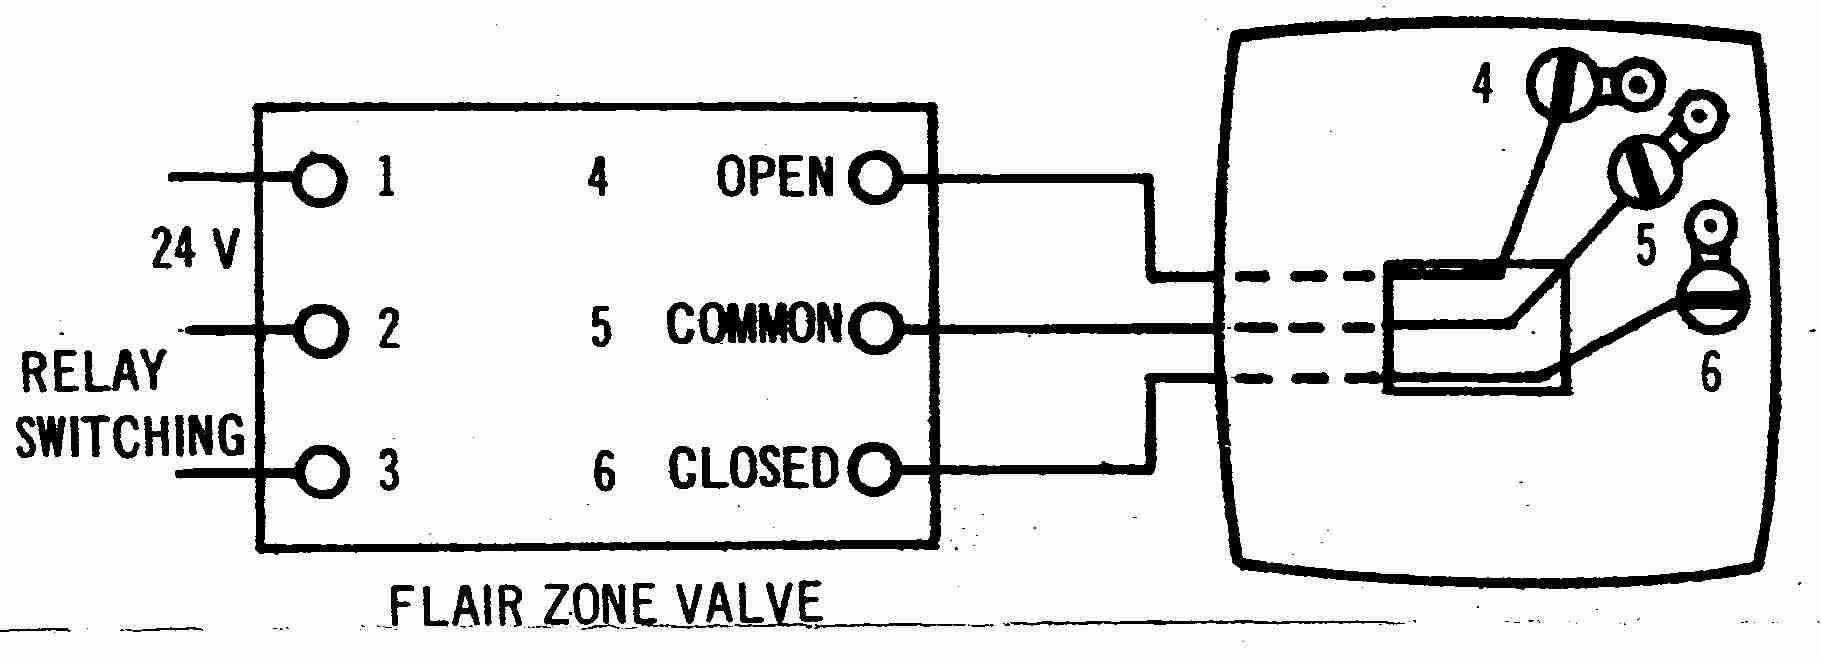 Flair3w_001_DJFc2 room thermostat wiring diagrams for hvac systems,6 Wire Thermostat Wiring Code